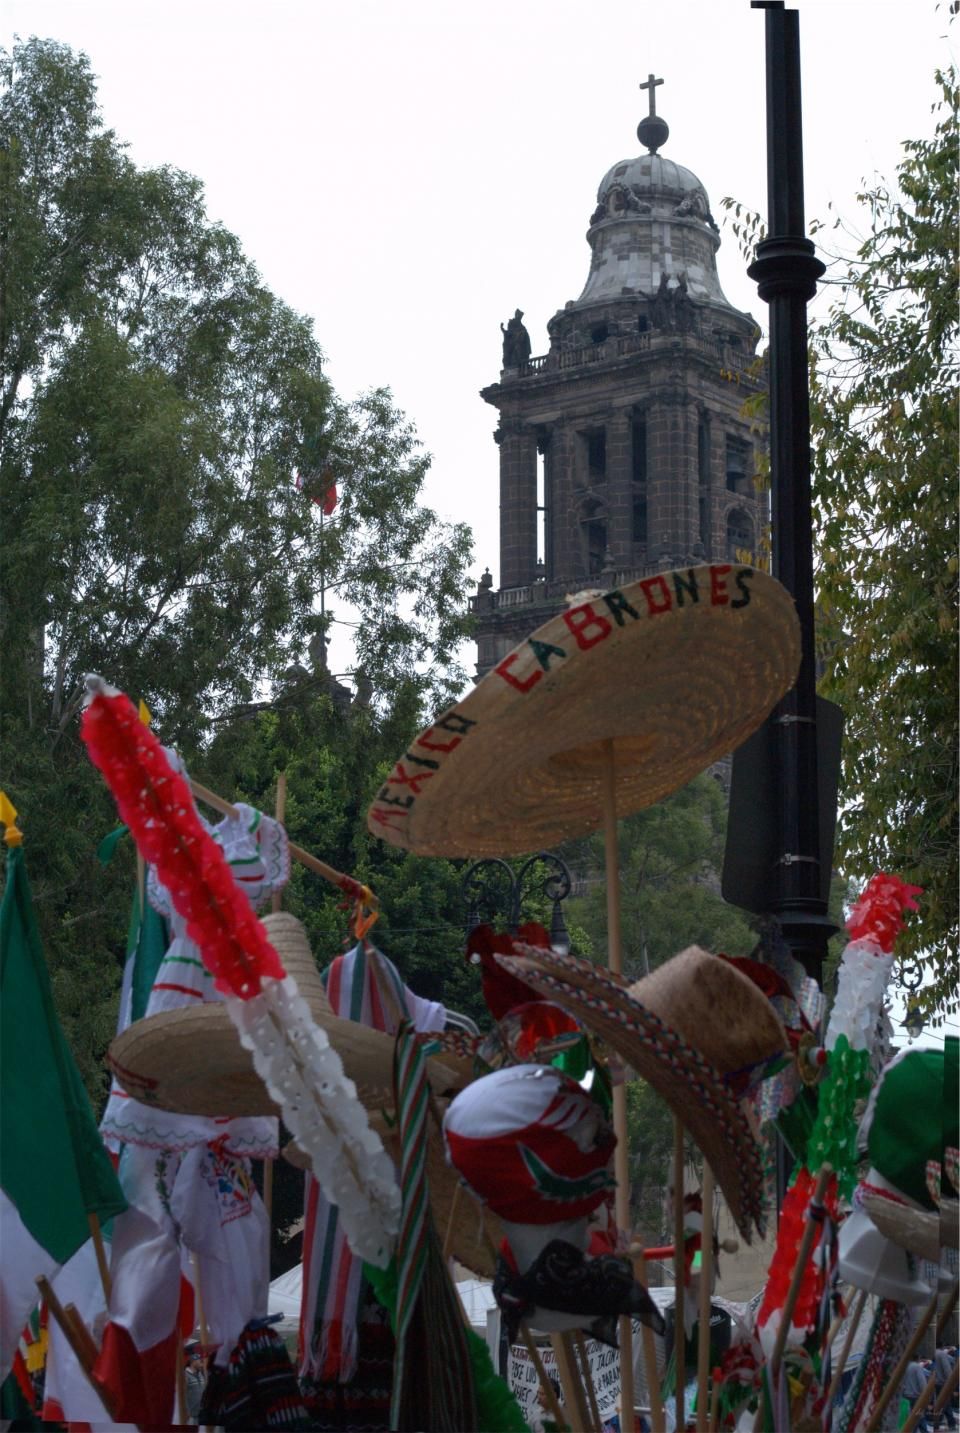 people, crowd, flags, Mexico, Mexicans, sombrero, protest